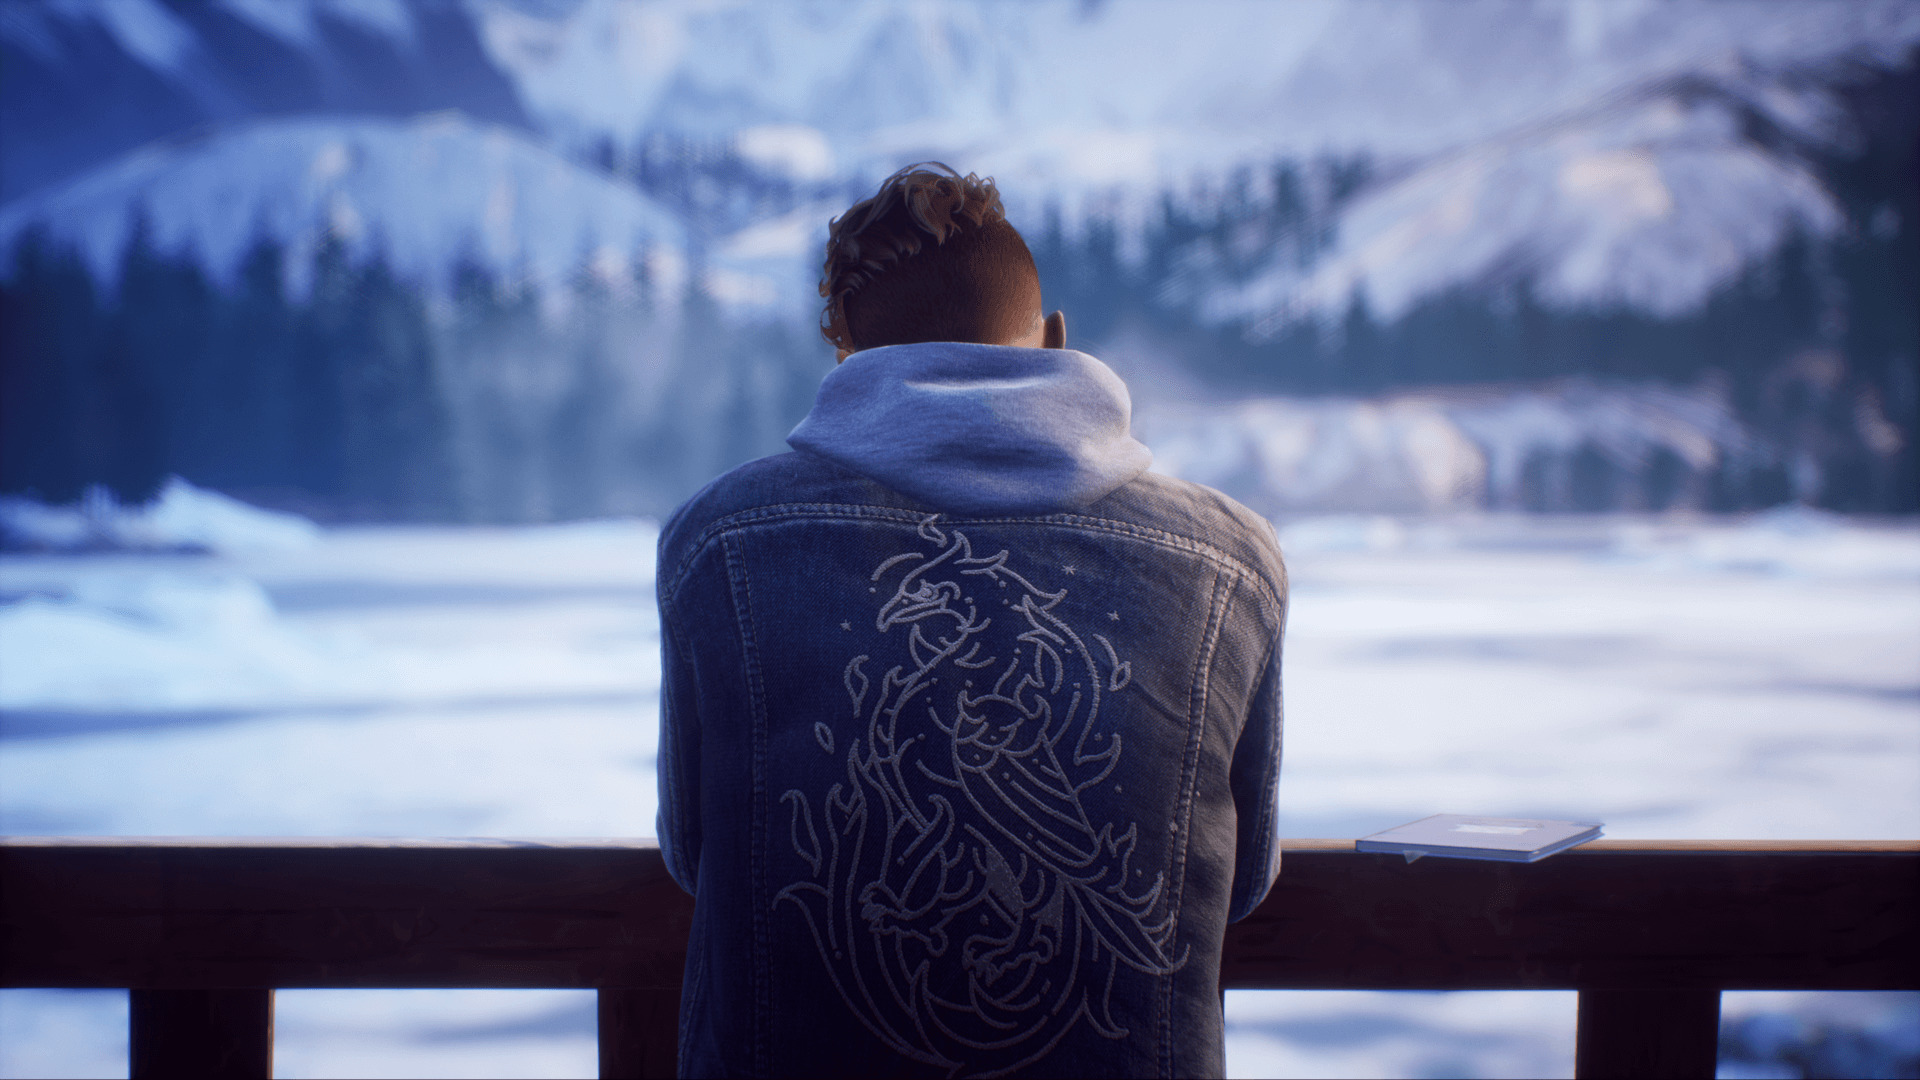 Dontnod unveils emotional tale Tell Me Why